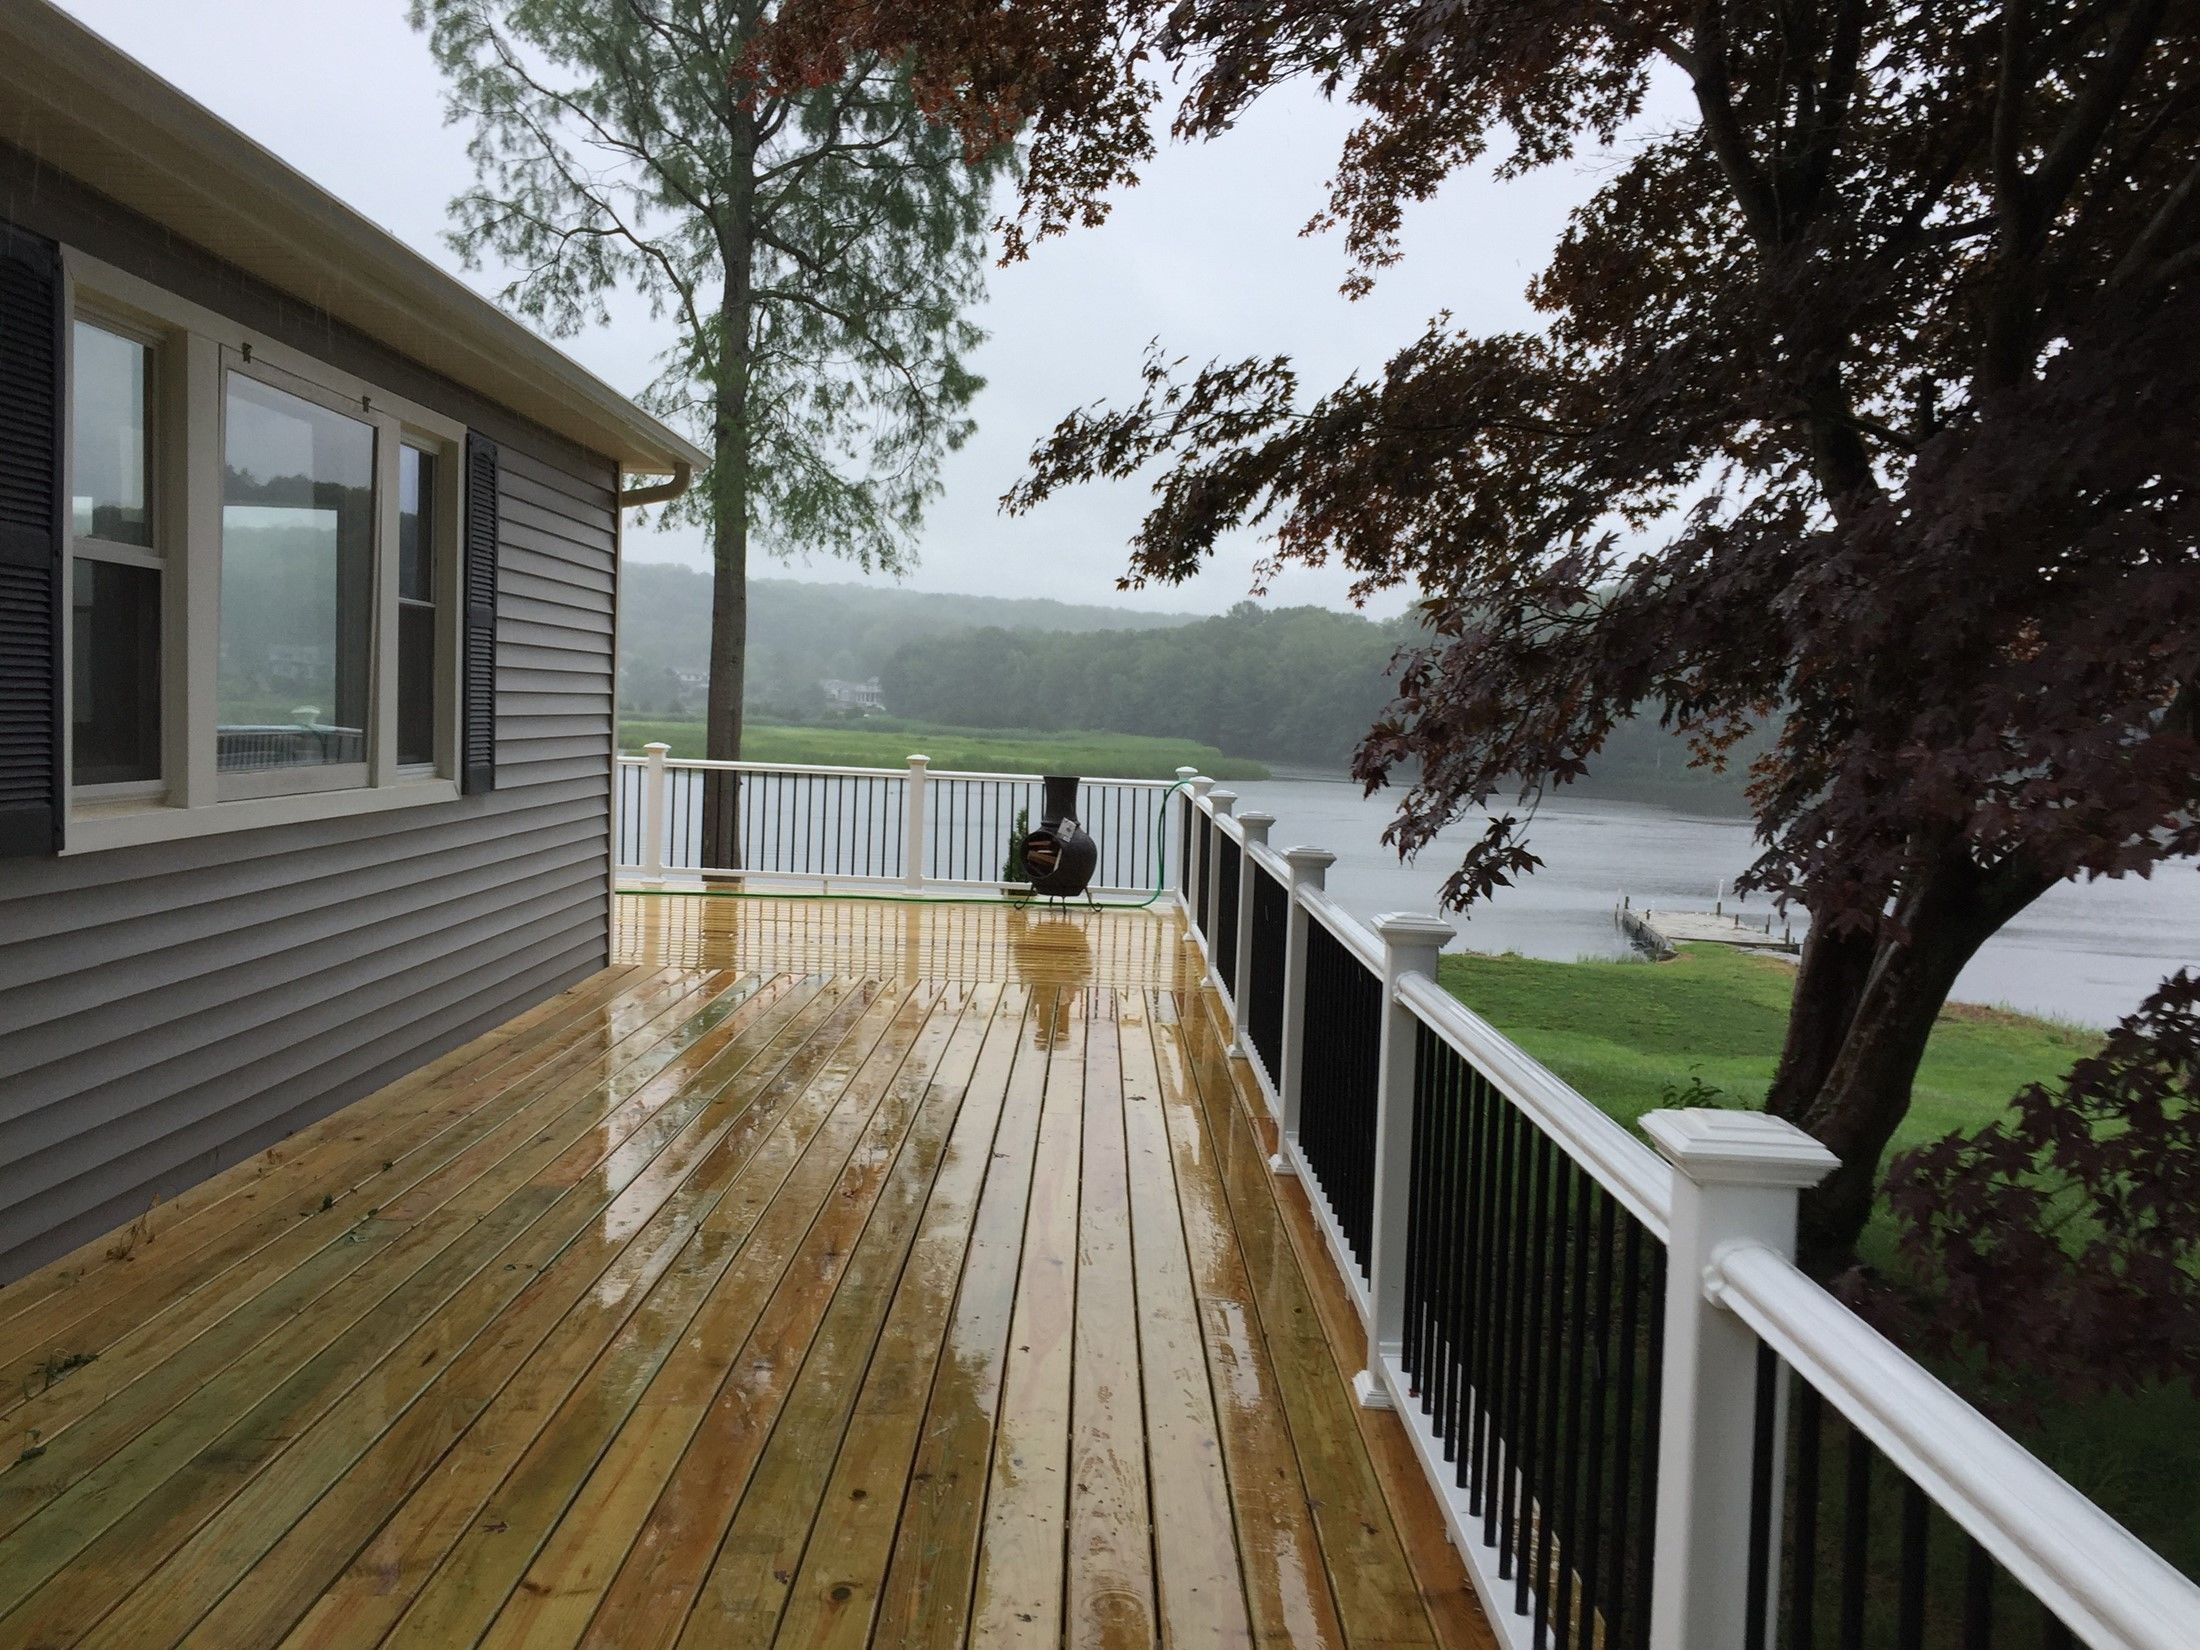 P/T DECK - Picture 7710